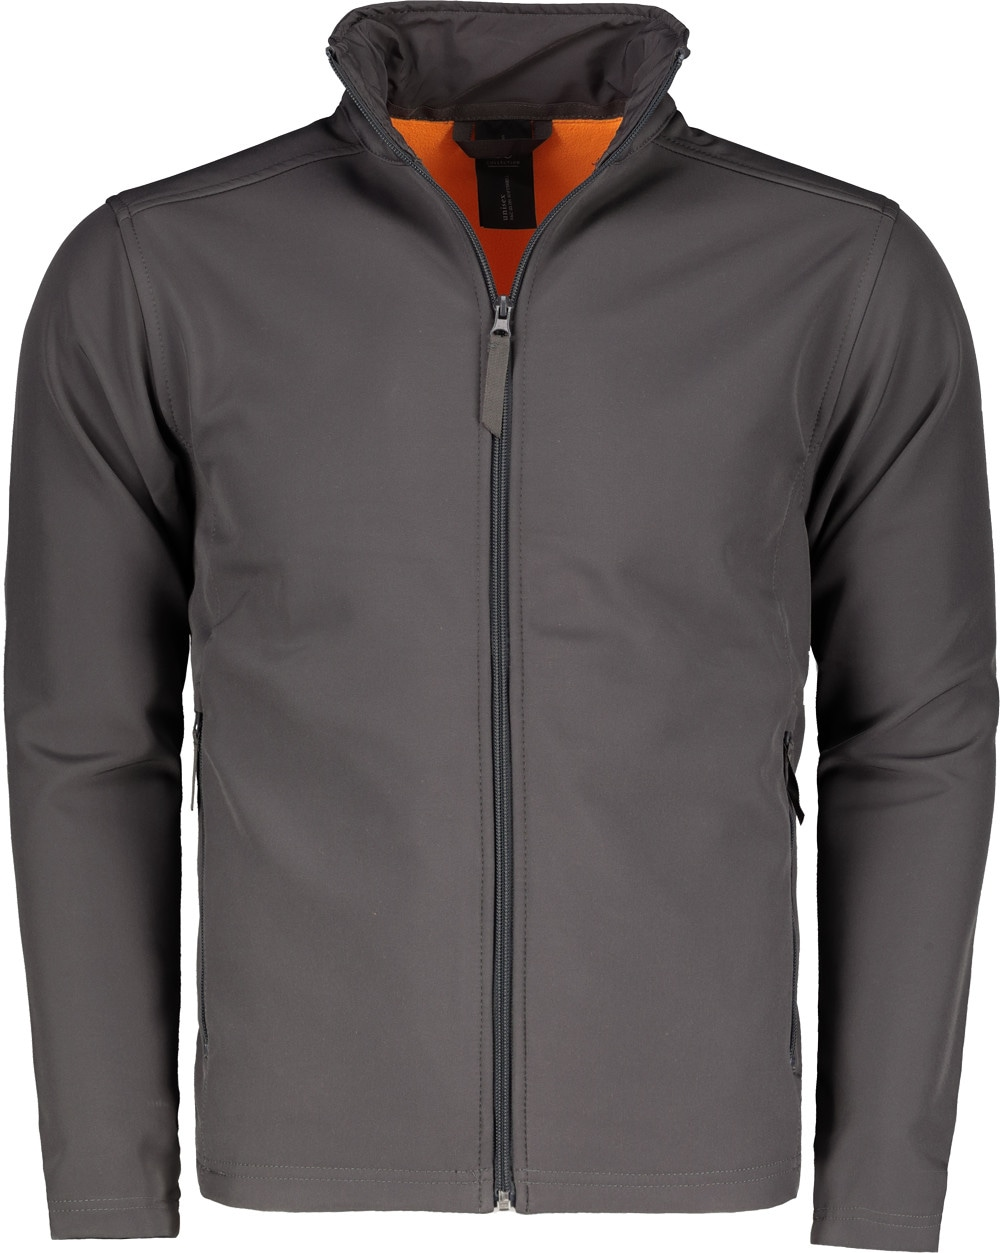 Men's softshell jacket B&C